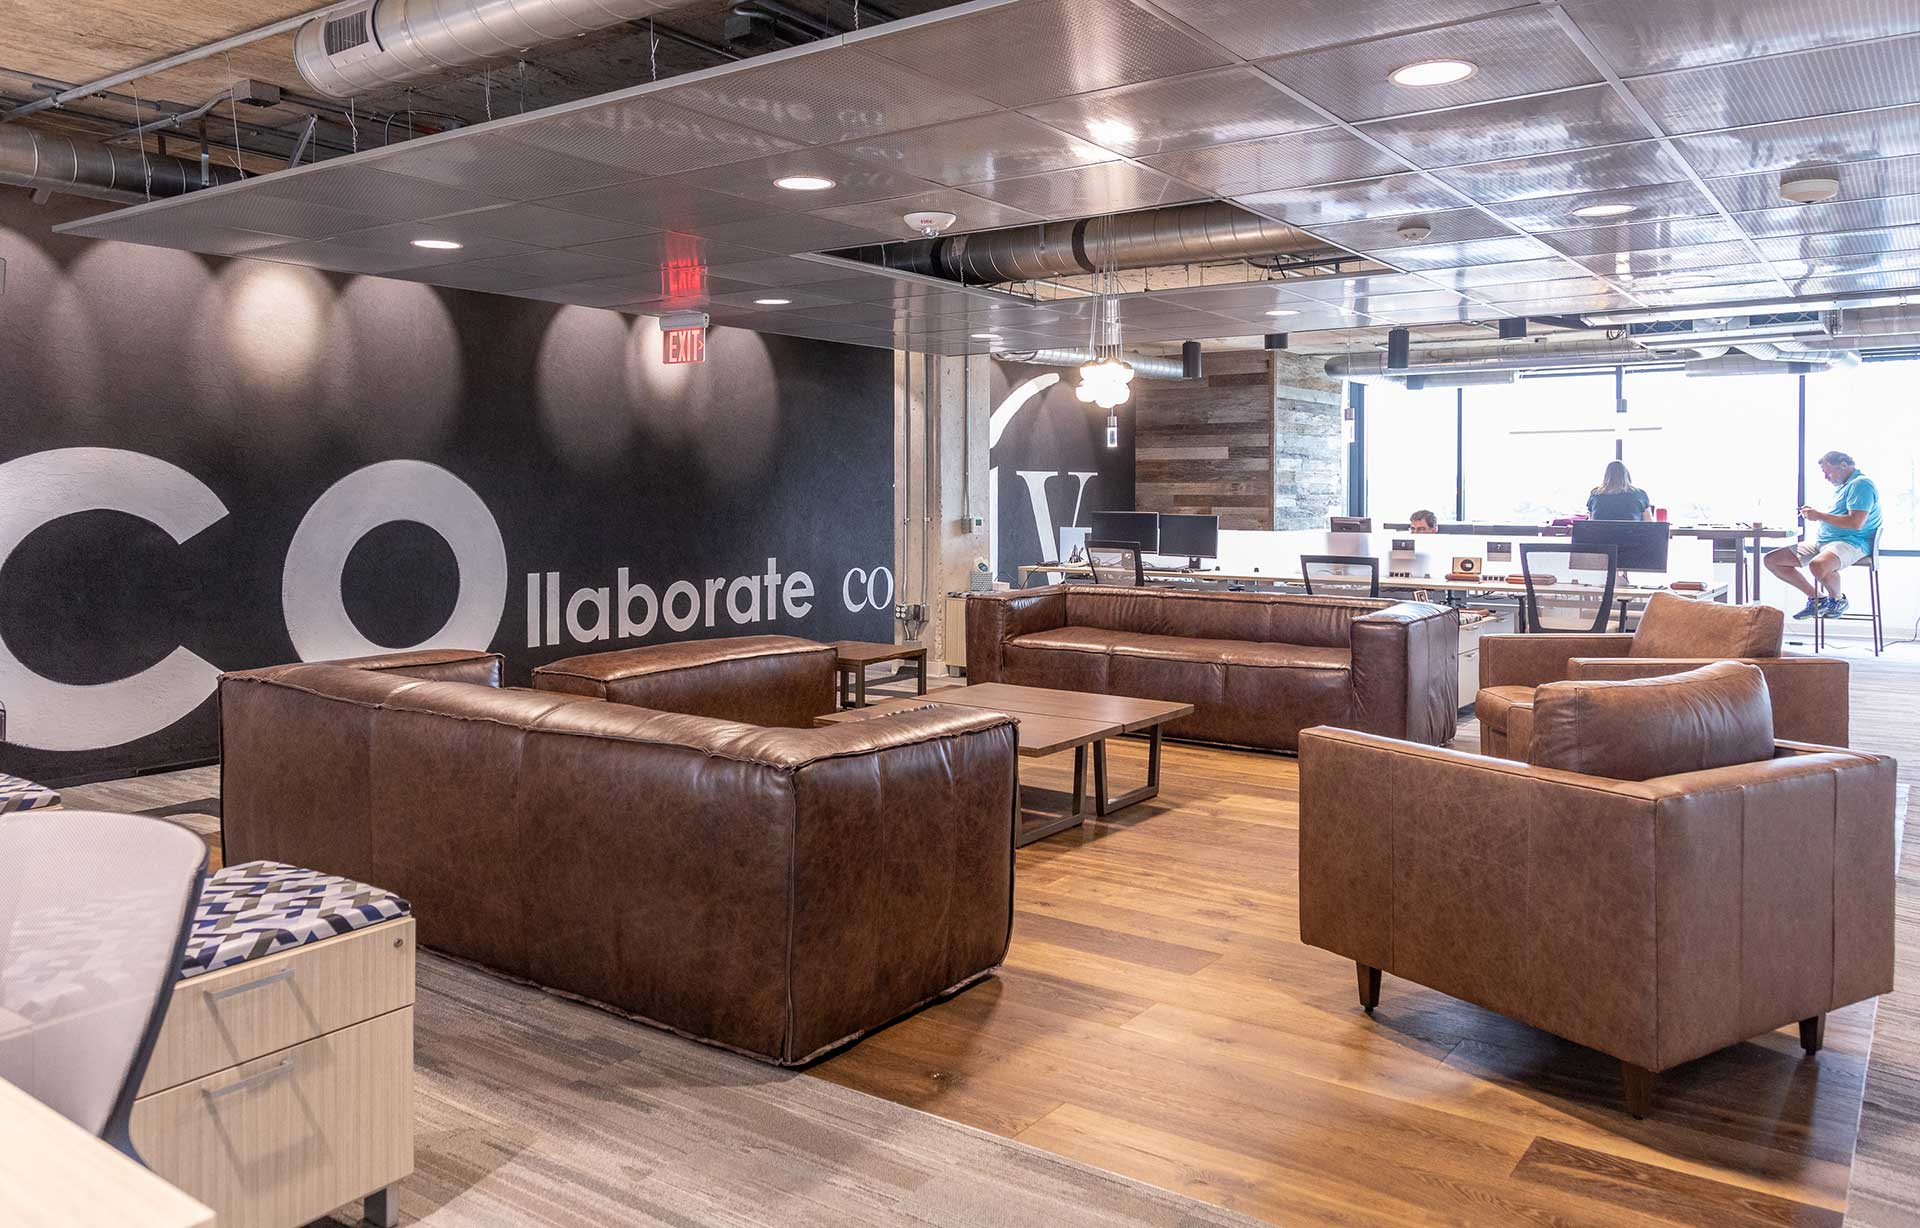 3 Reasons Coworking Spaces are the Best Hybrid Solution